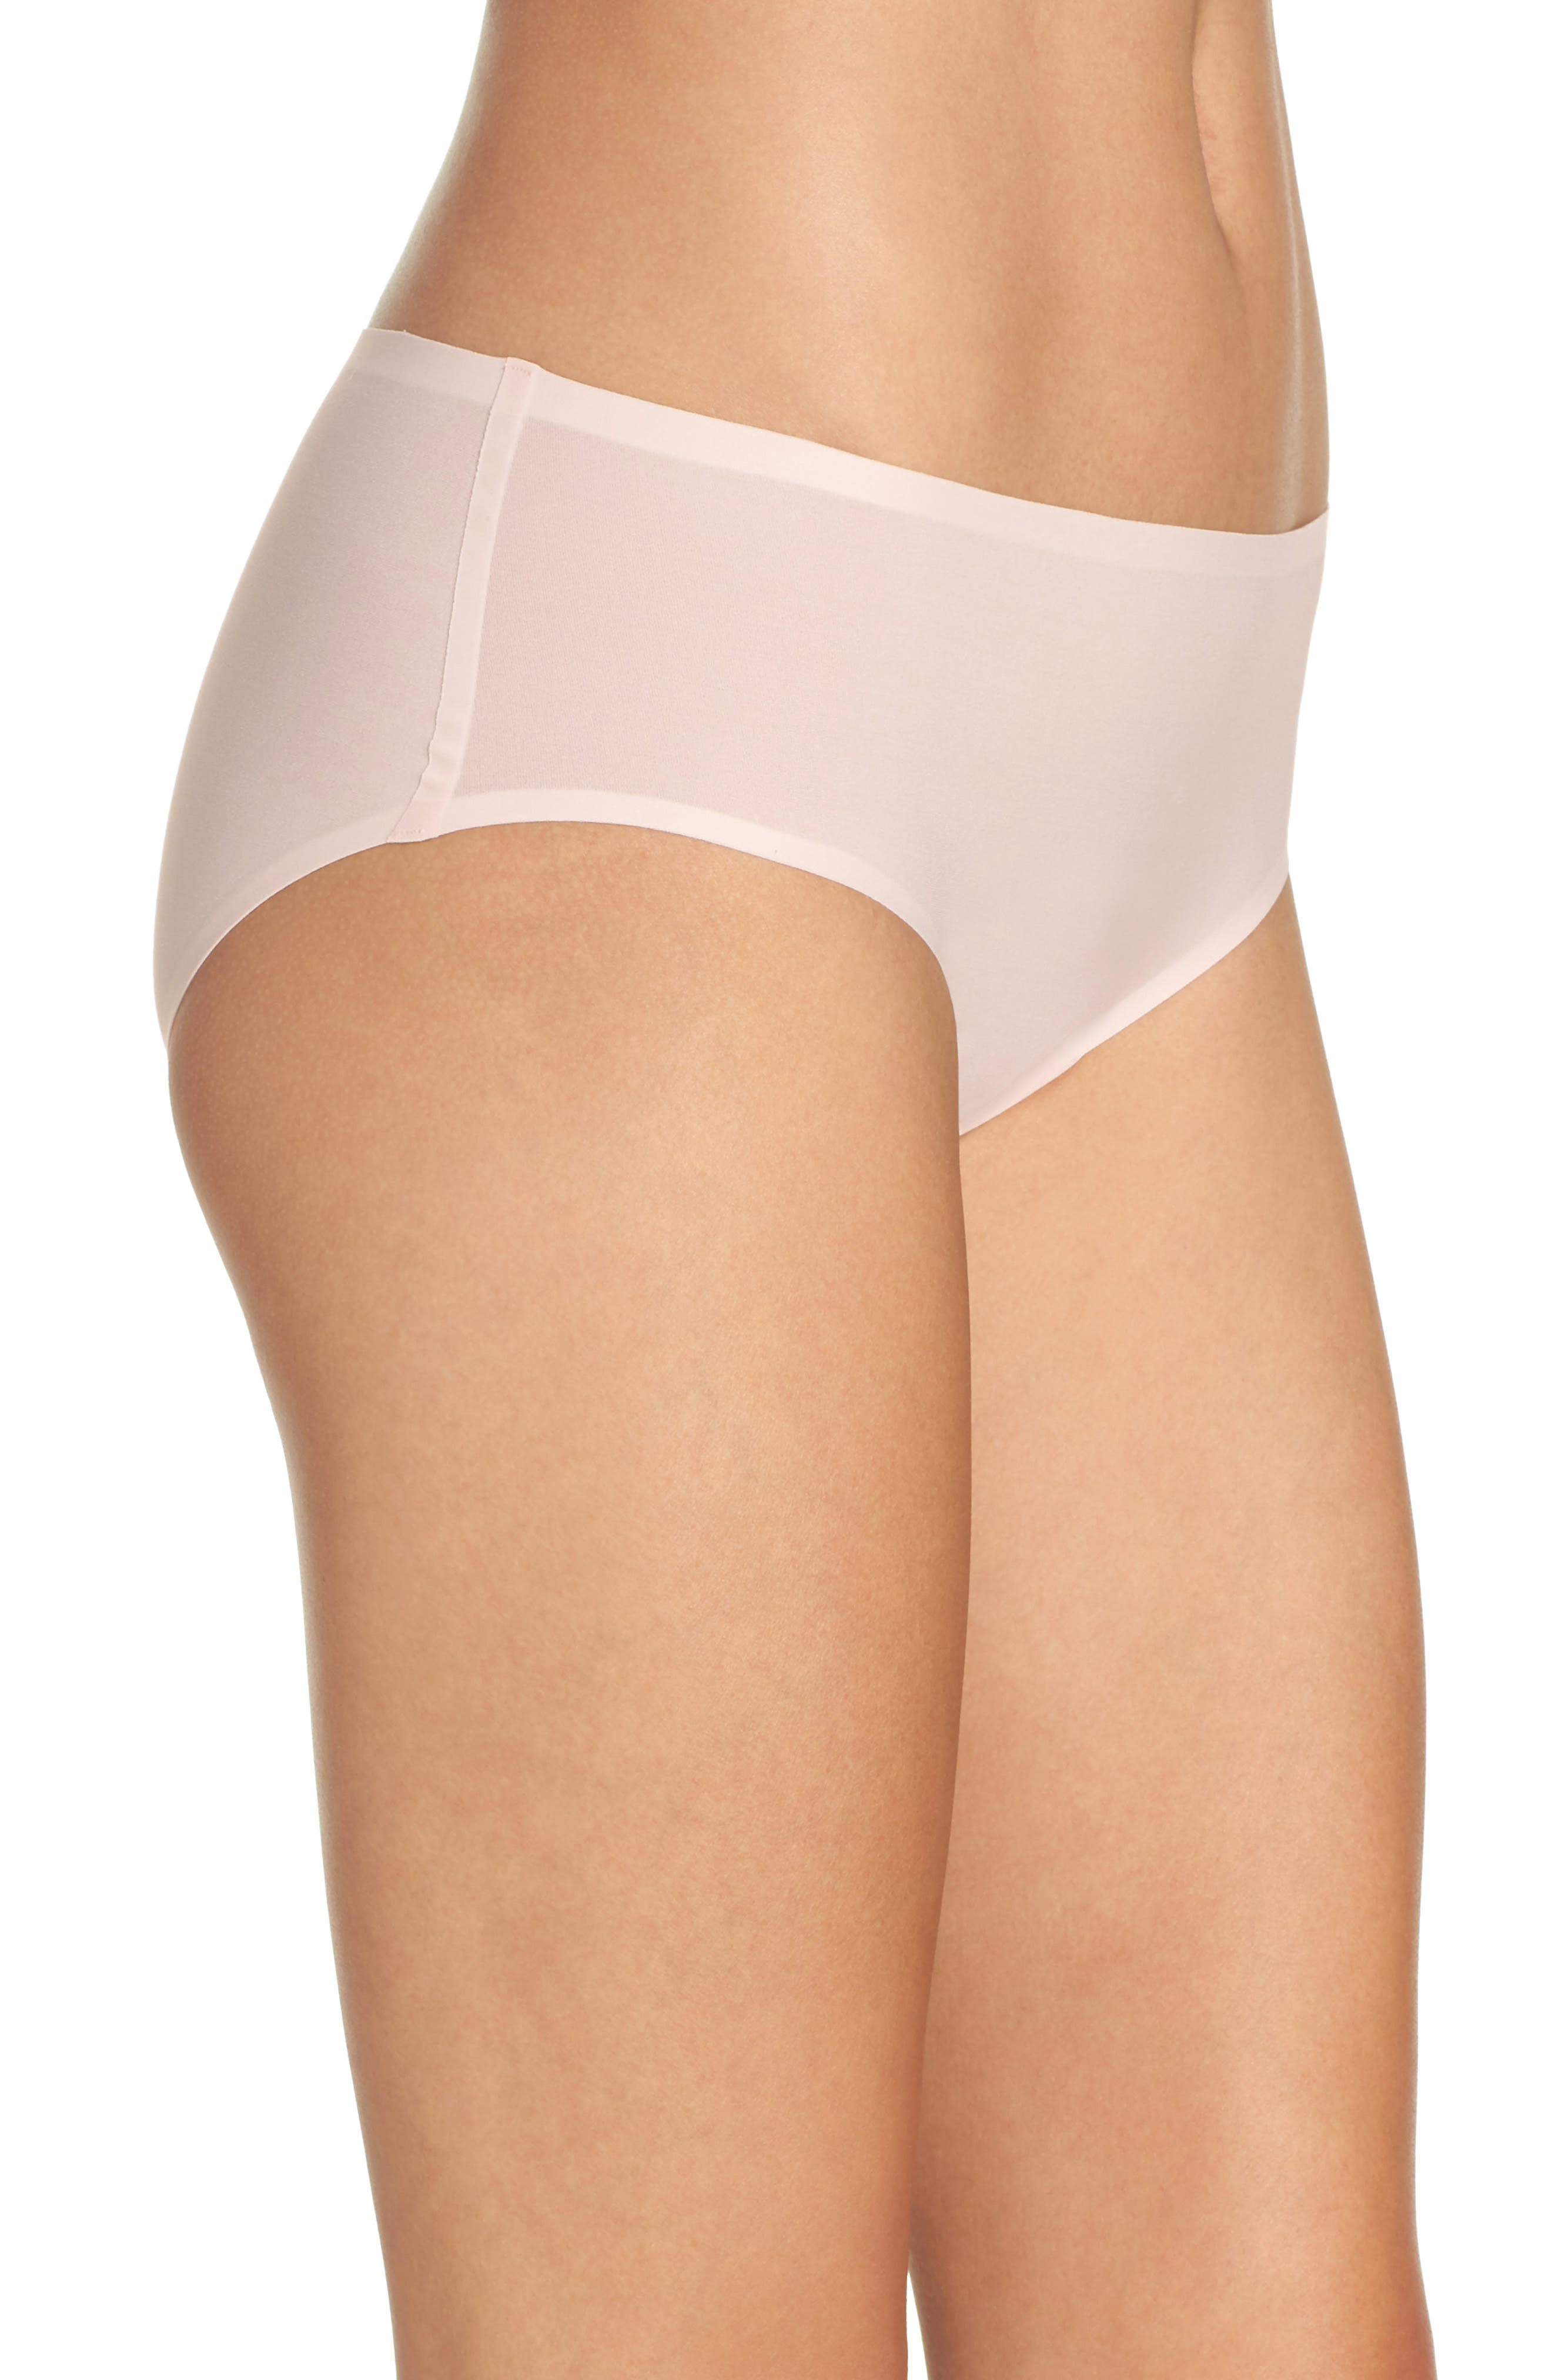 Alternate Image 3  - Chantelle Intimates Soft Stretch Seamless Hipster Panties (3 for $45)